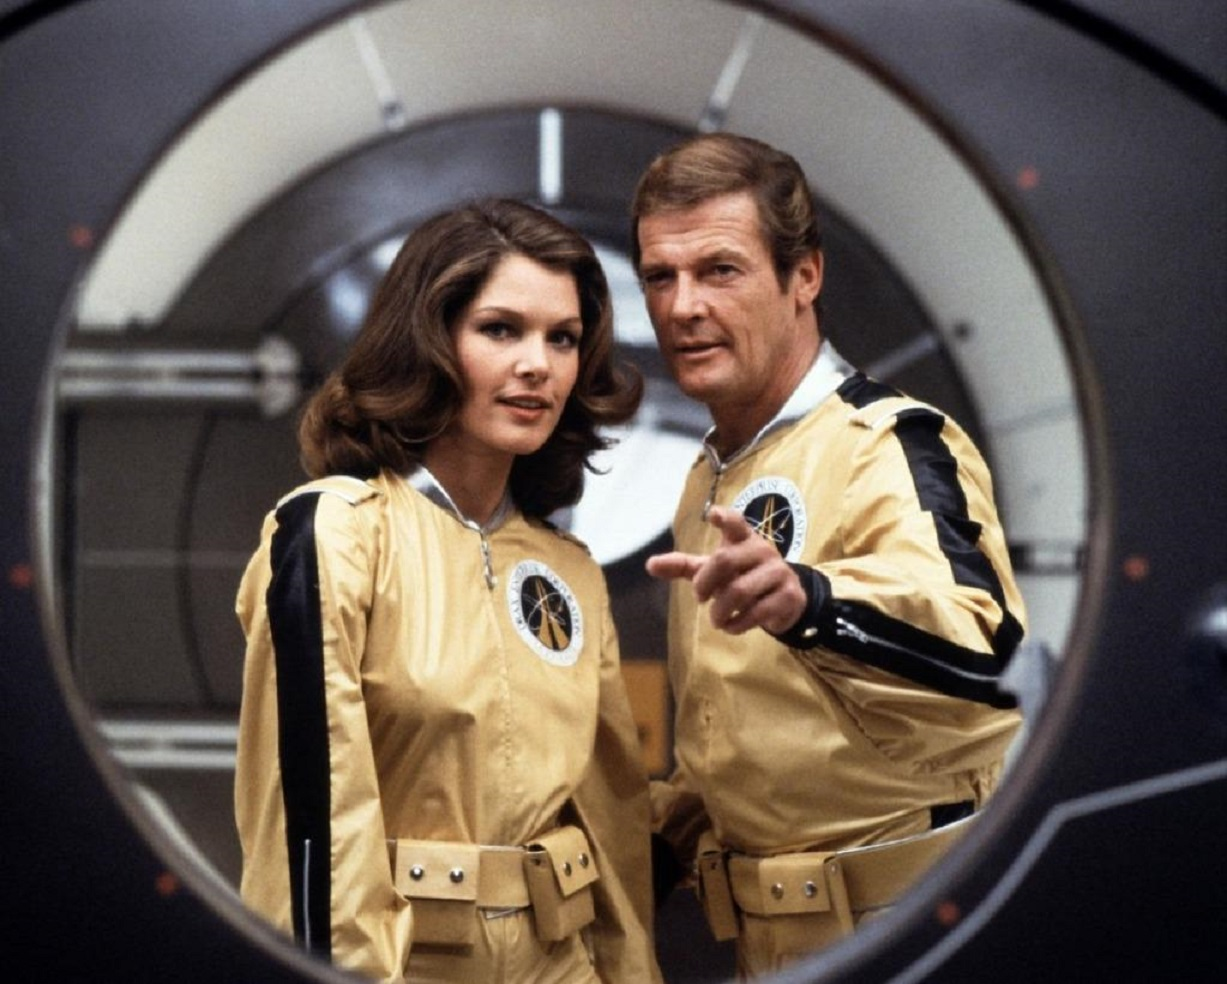 James Bond (Roger Moore) and Dr Holly Goodhead (Lois Chiles) in Moonraker (1979)